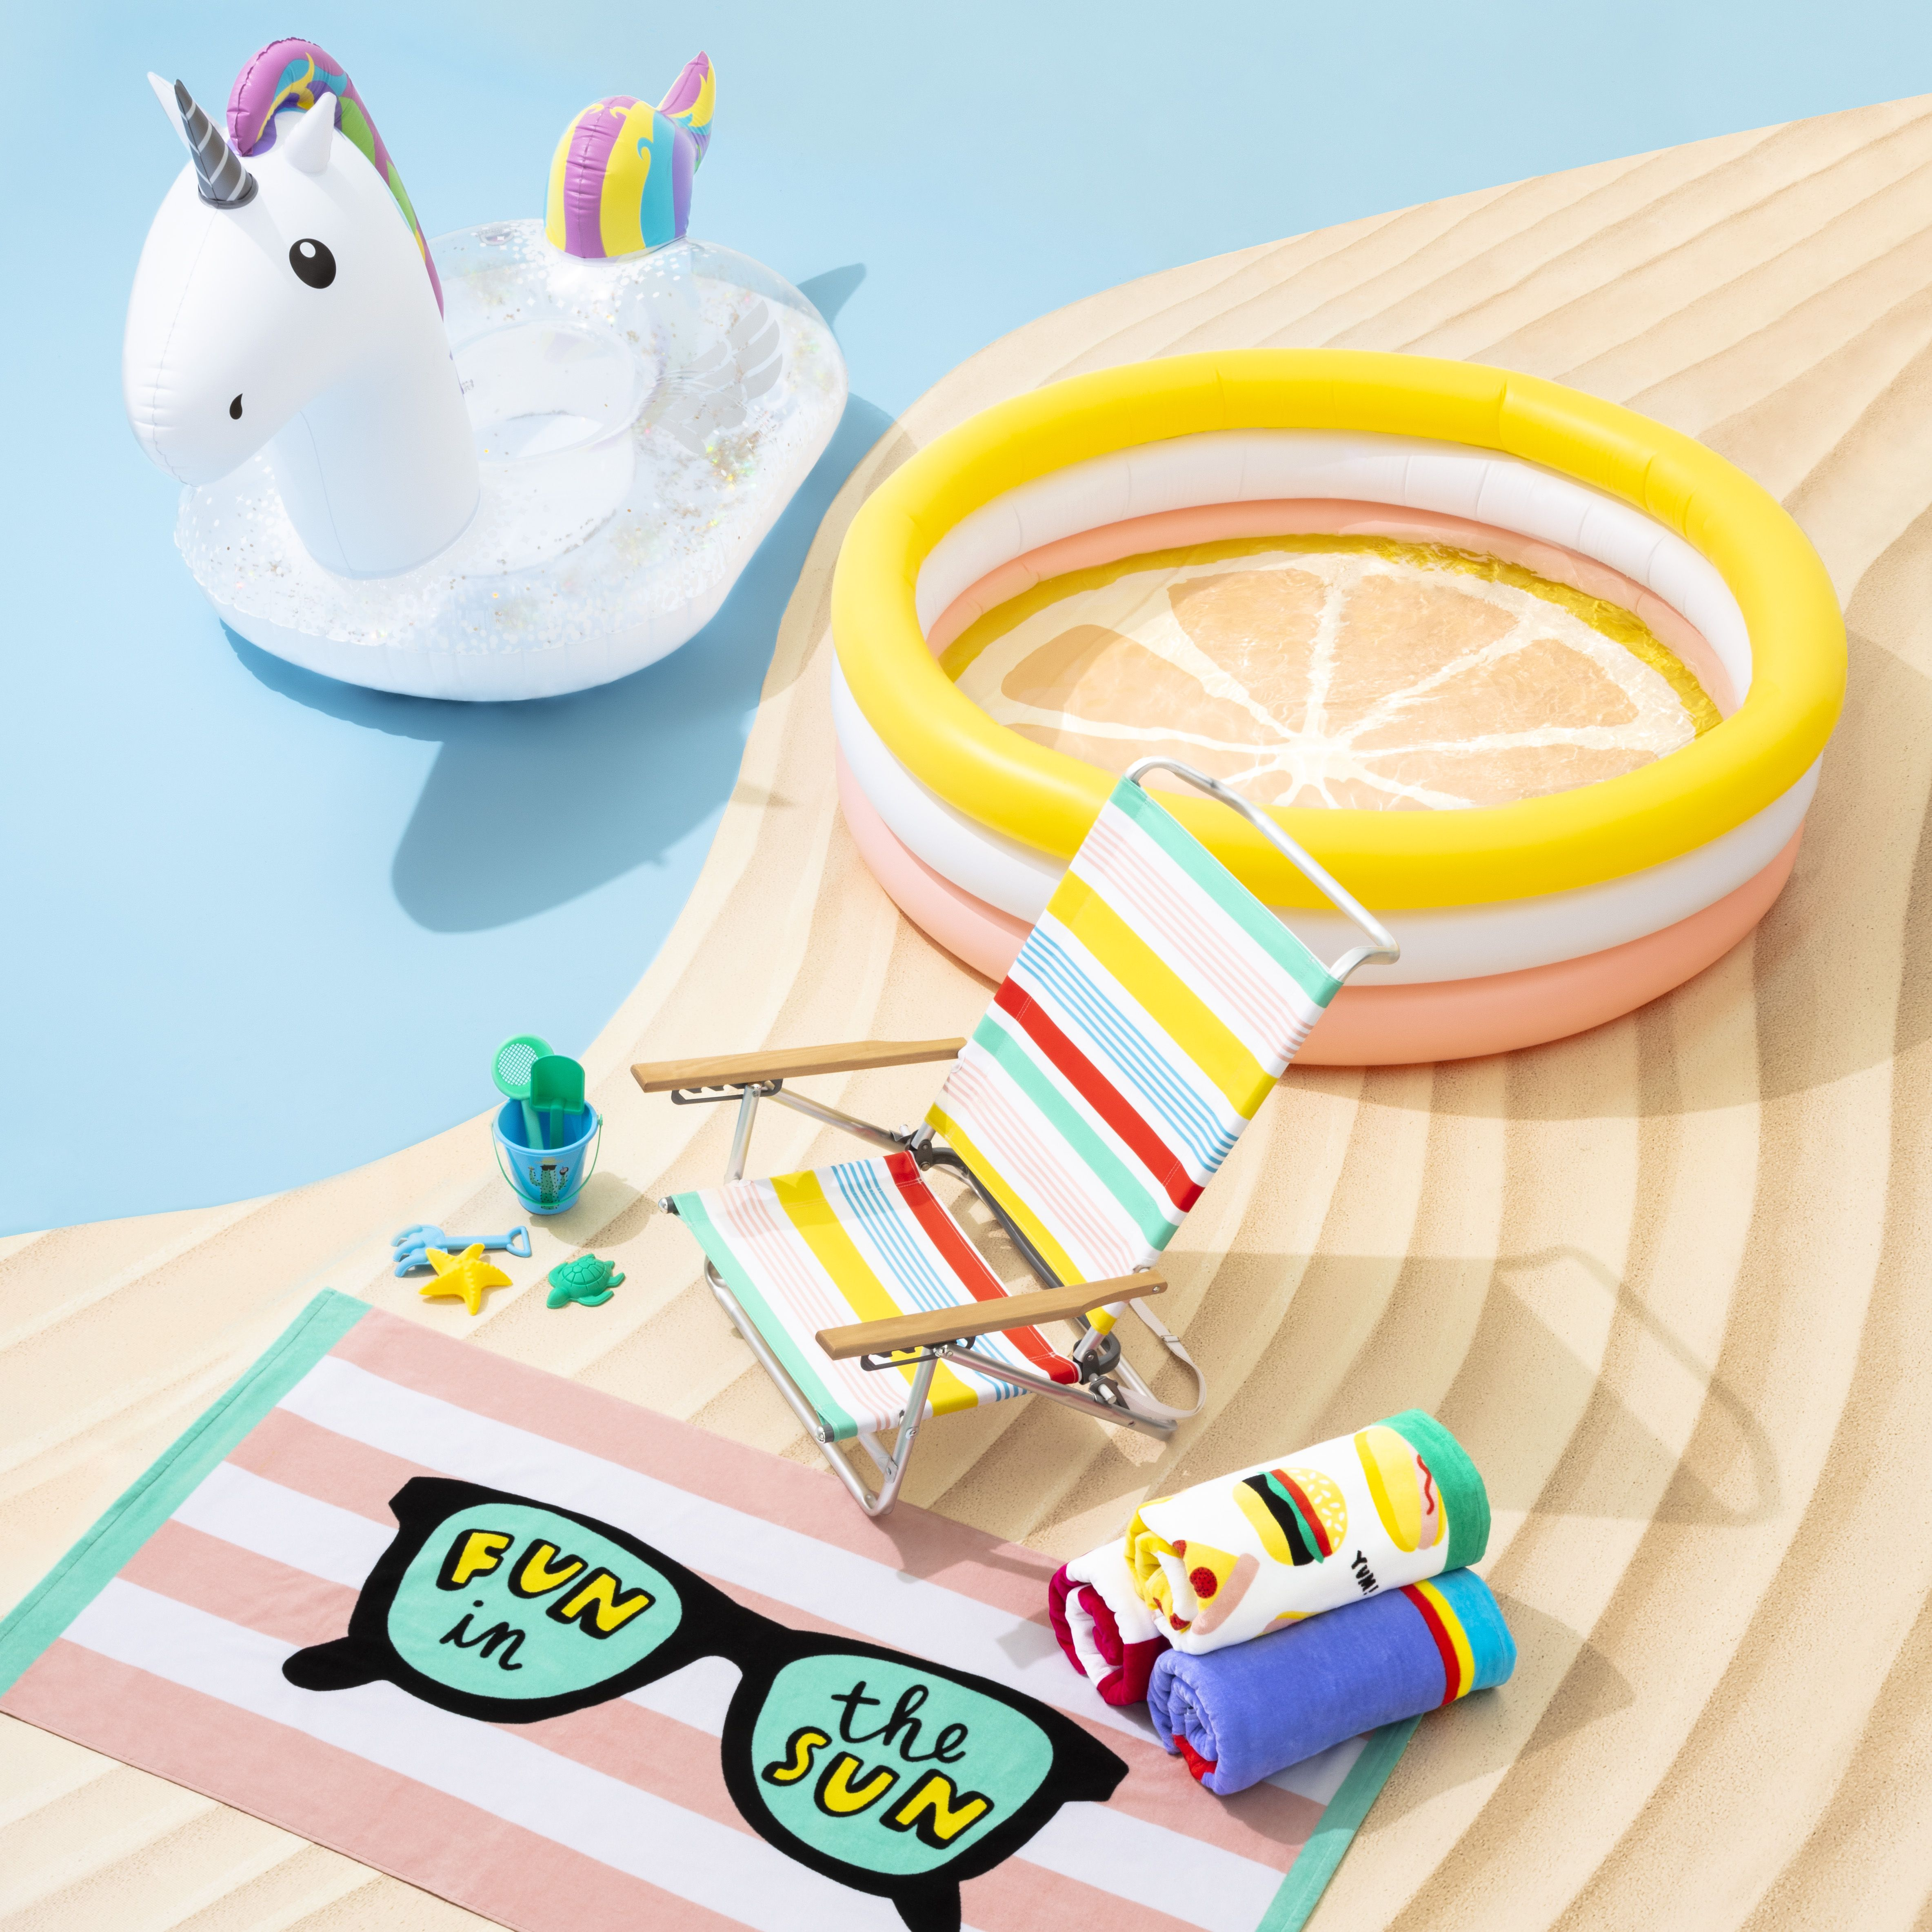 Target Now Has Everything You Need for an Epic Summer